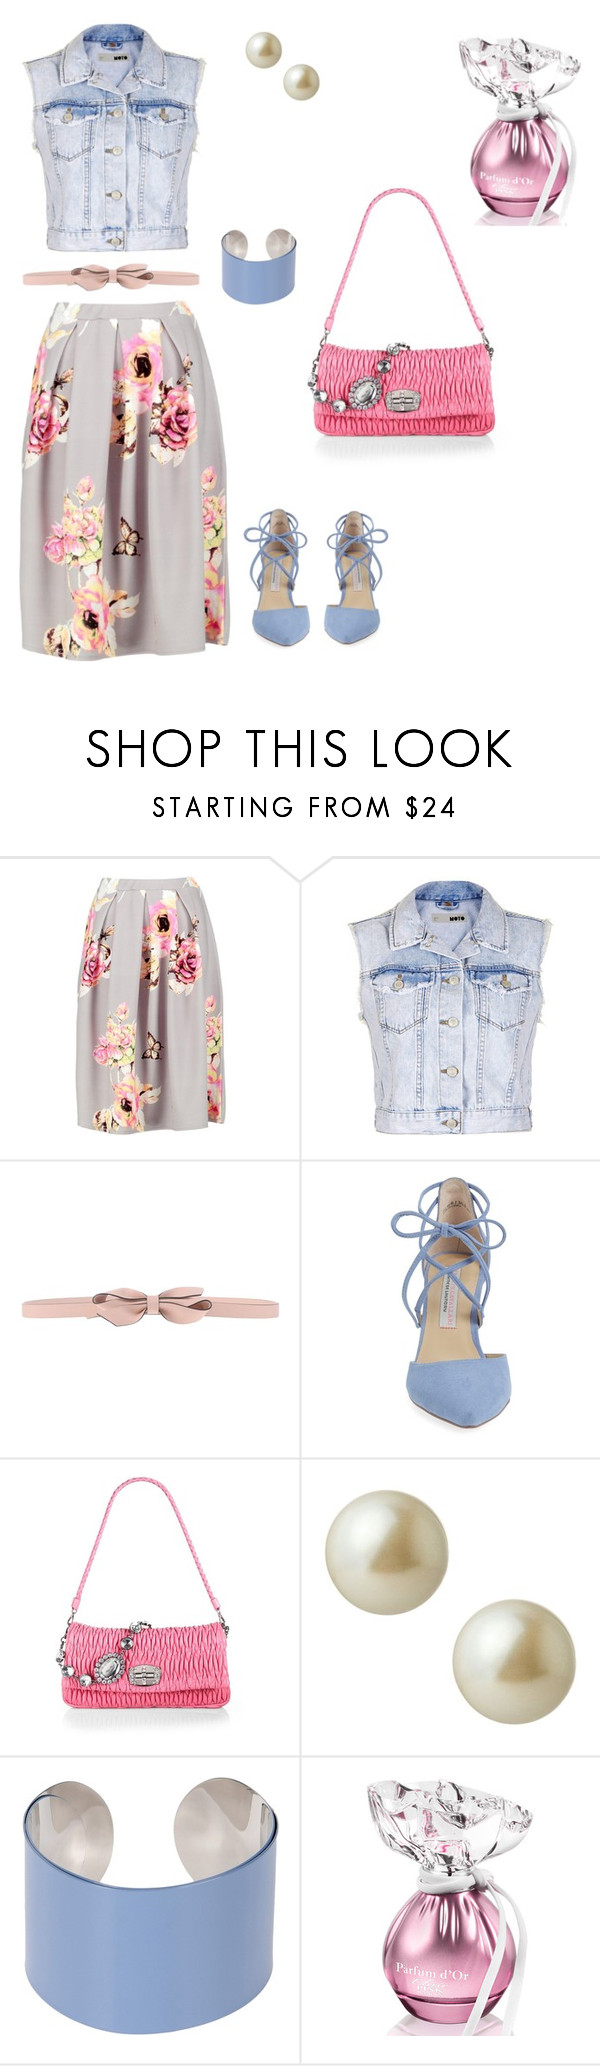 """Boy meets girl"" by curvecruiser ❤ liked on Polyvore featuring Boohoo, Topshop, RED Valentino, Kristin Cavallari, Miu Miu, Carolee and Maison Margiela"